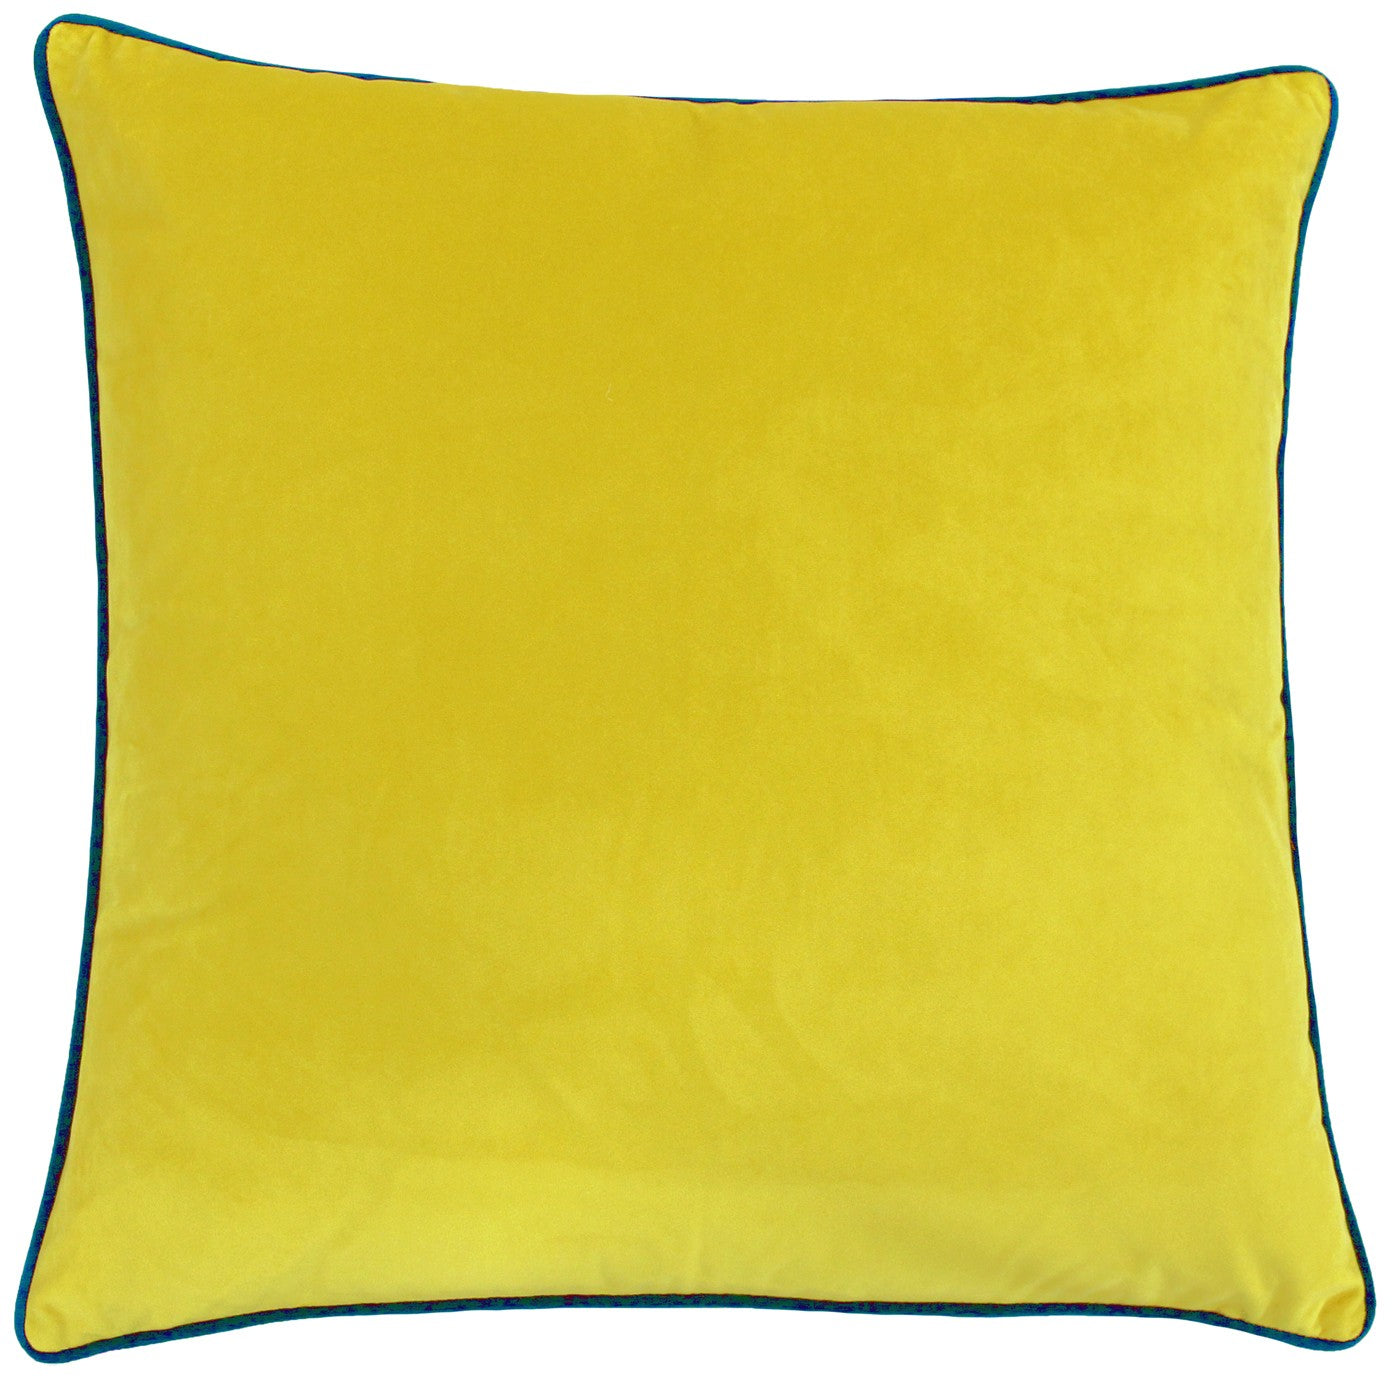 Large velvety smooth Yellow and Teal trimmed cushion